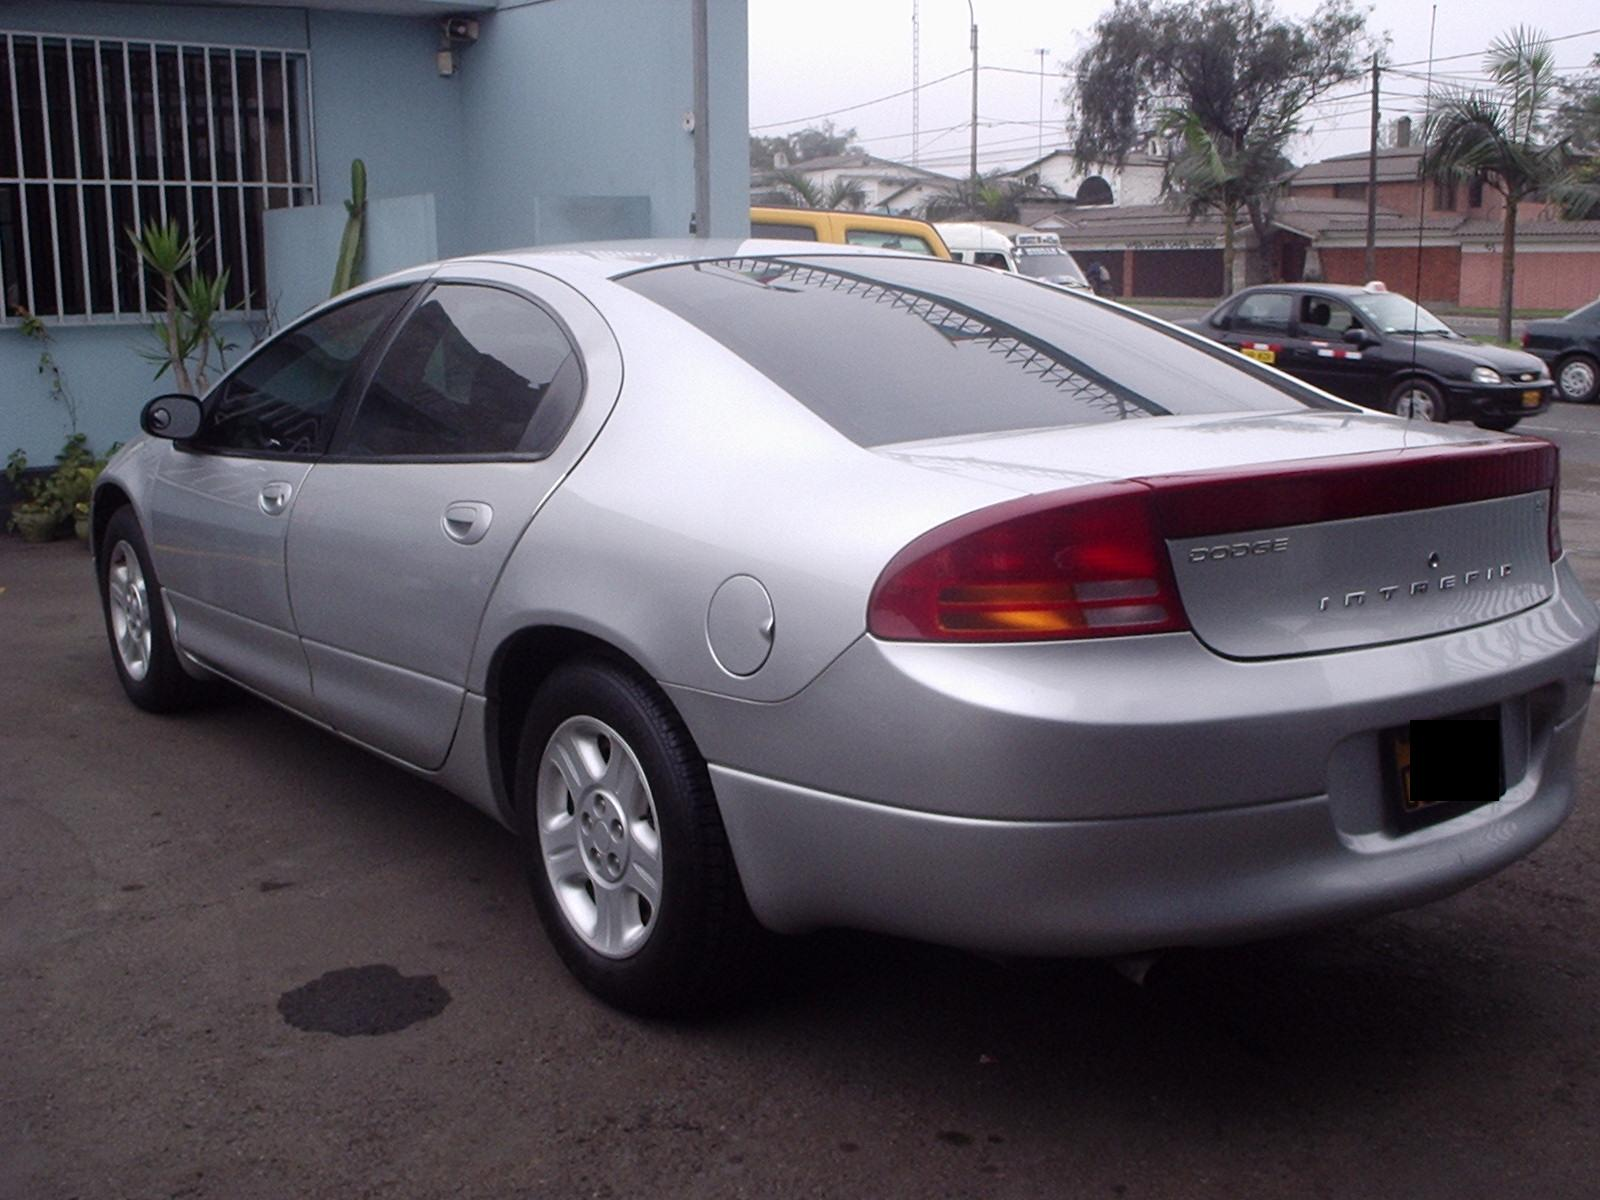 Dodge Intrepid #14